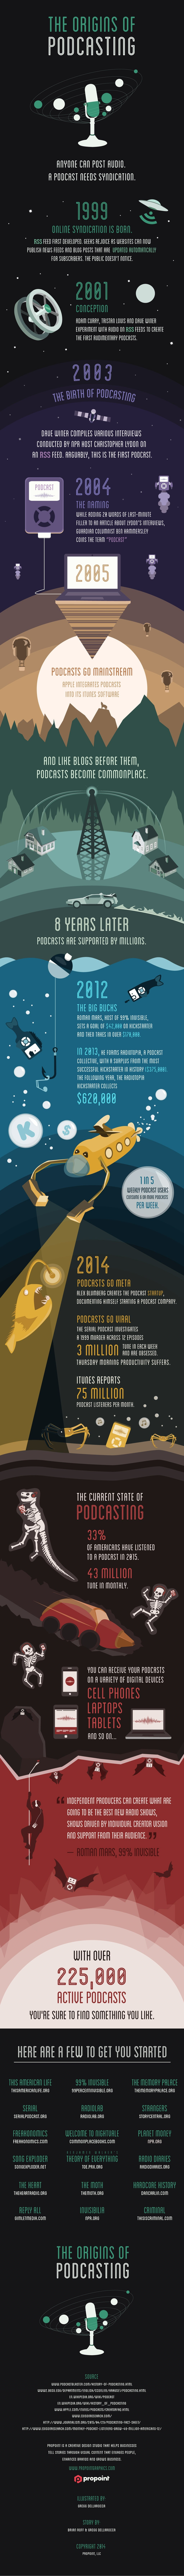 Uncovering the True History of Podcasting Infographic